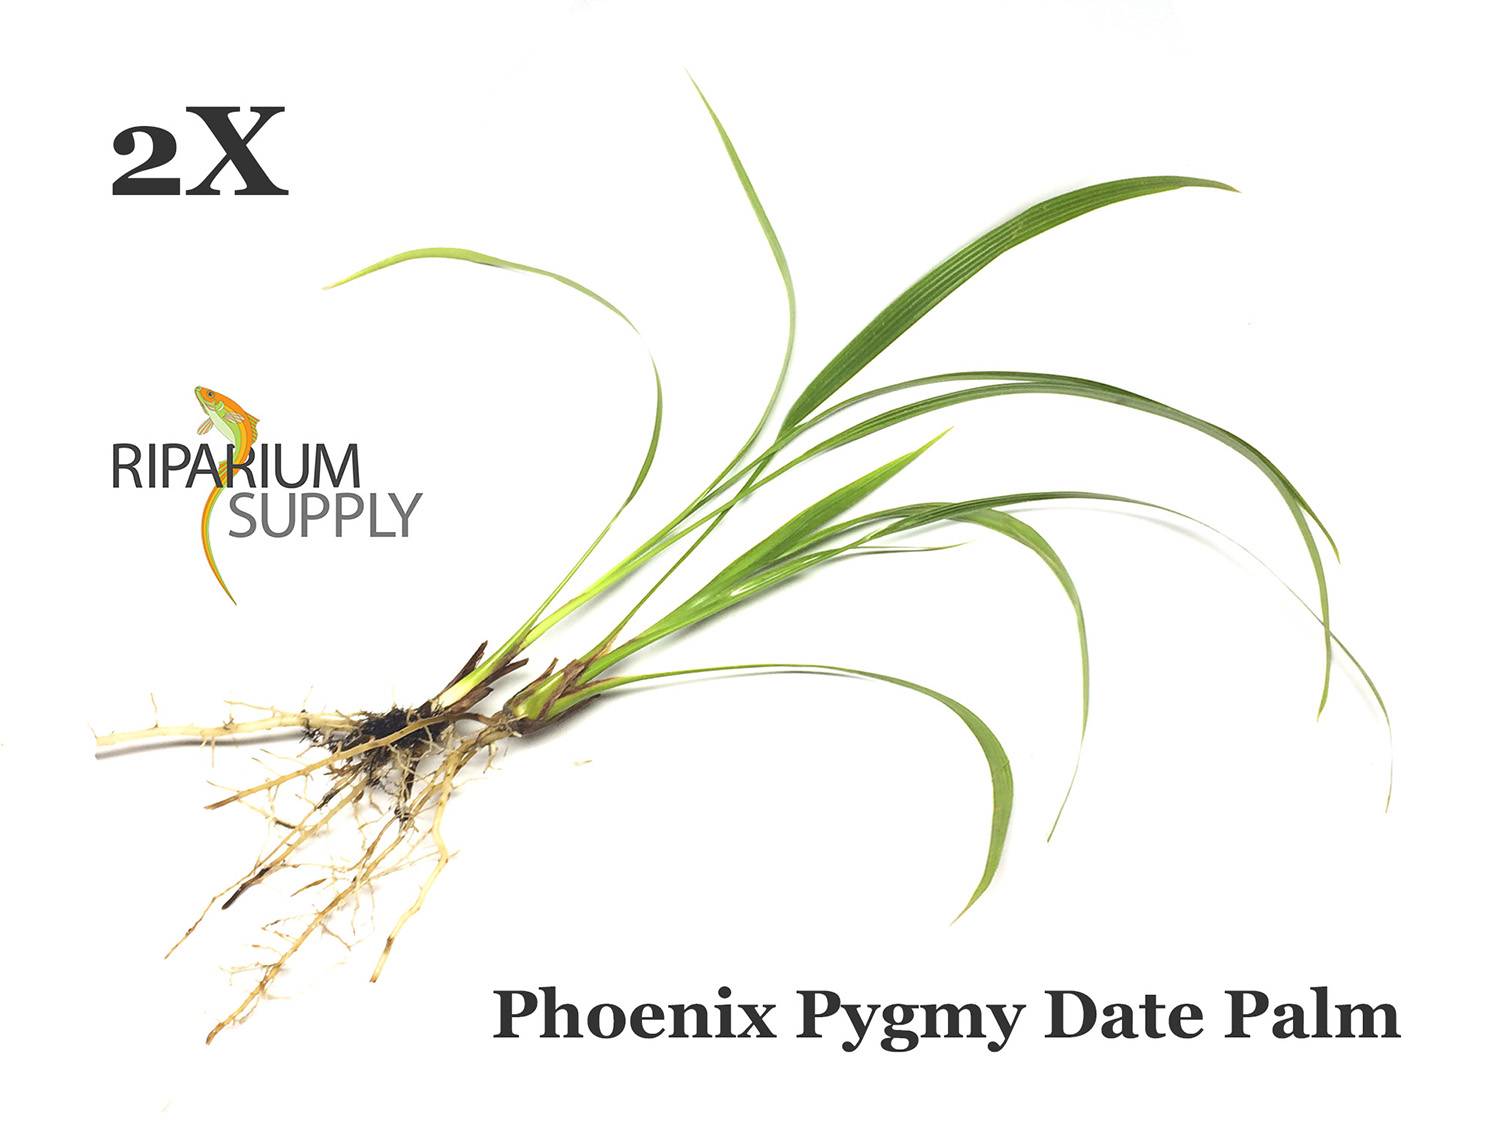 Phoenix Pygmy Date Palm catalog listing by Riparium Supply.